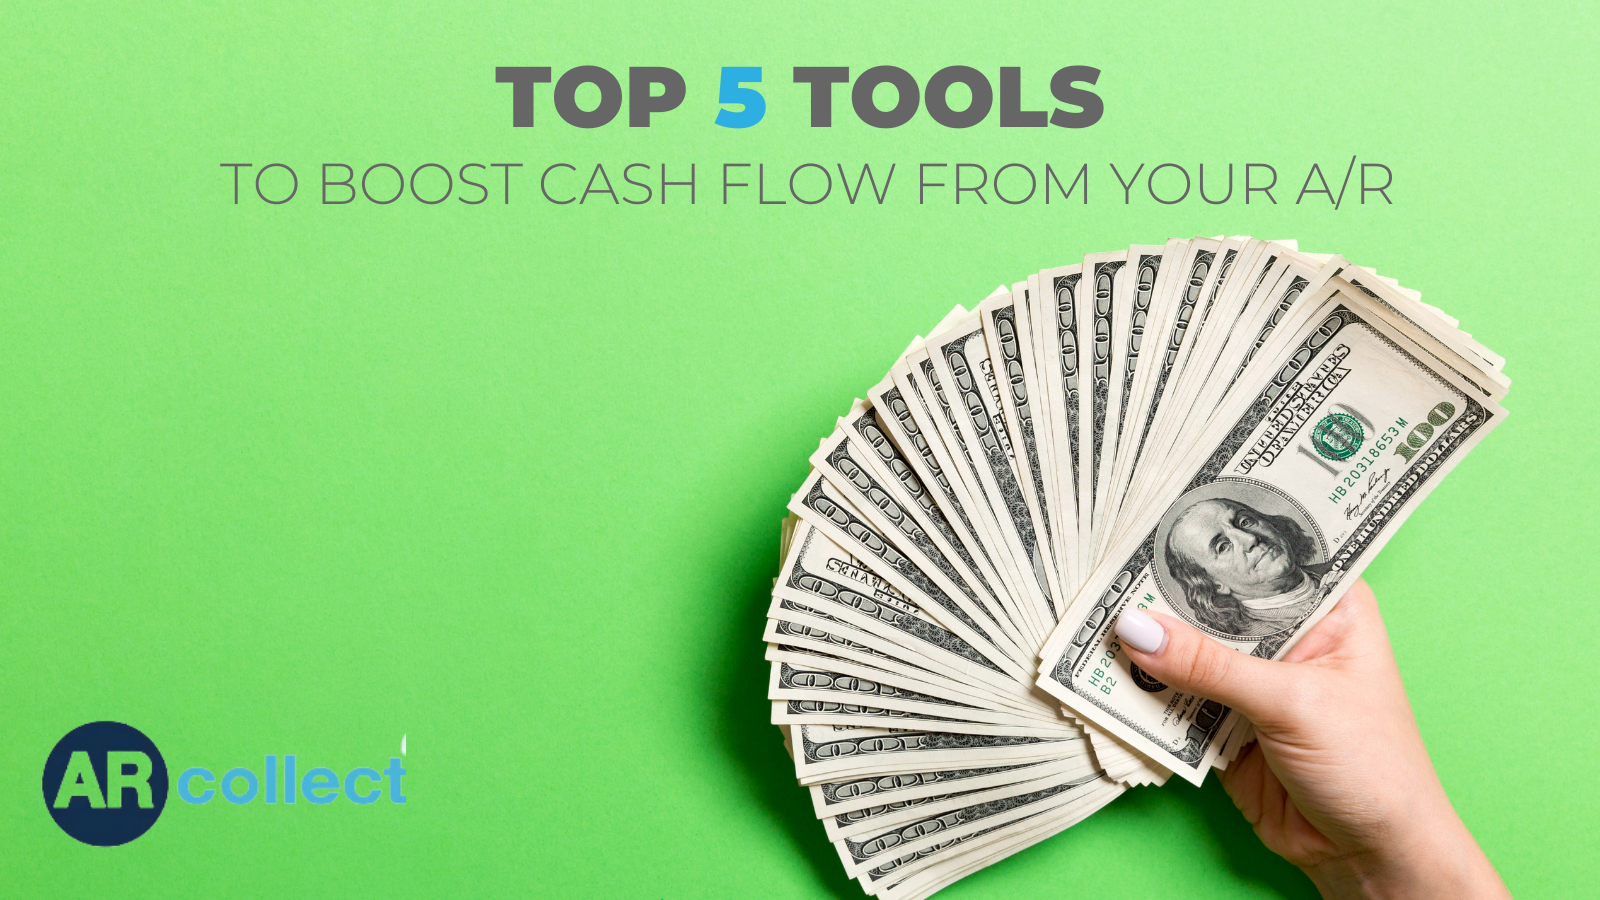 Top 5 Tools to Boost Cash Flow From Your A/R